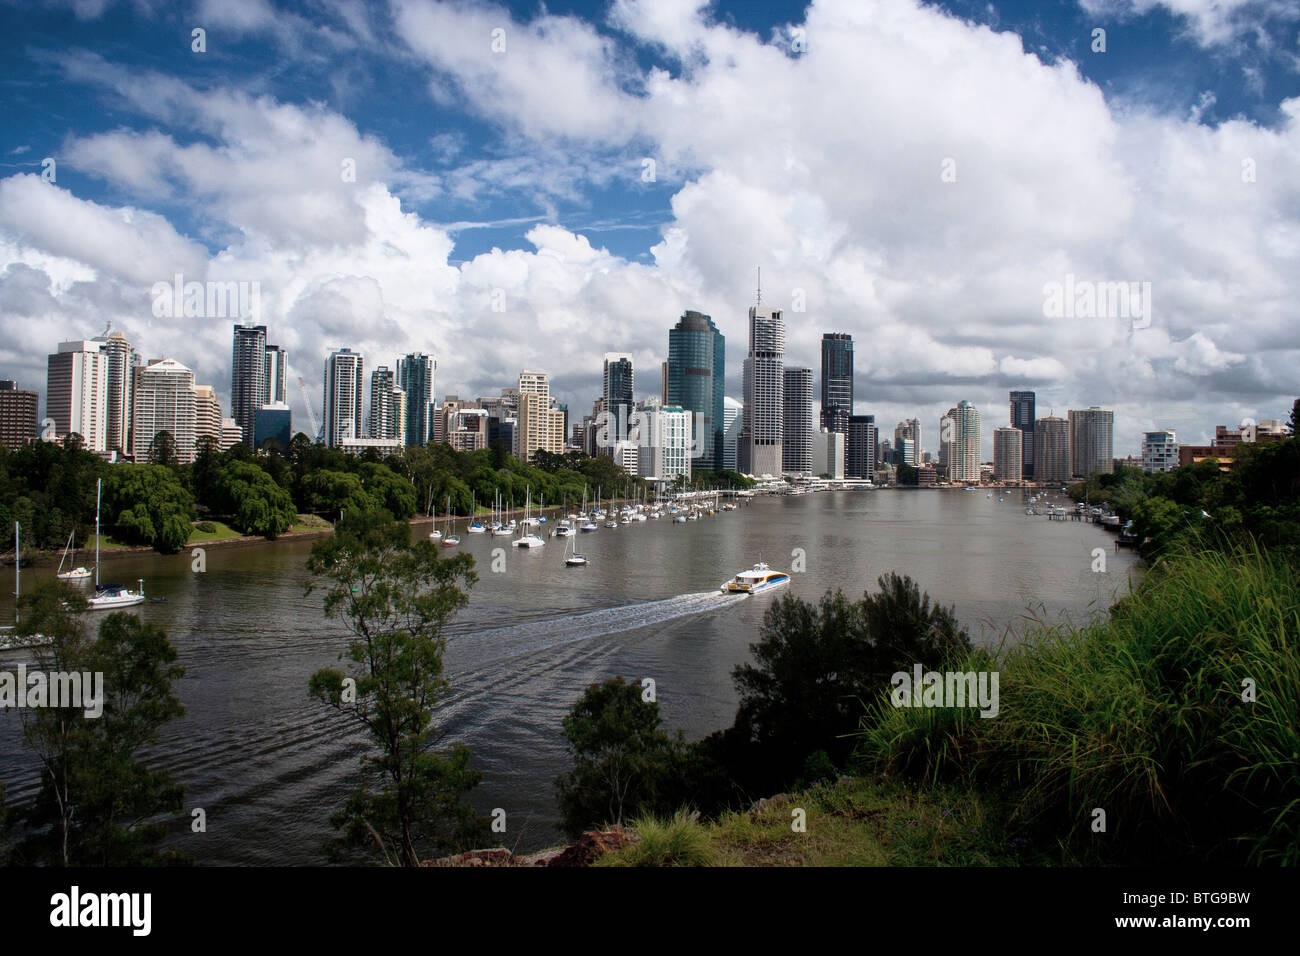 A CityCat plies the Brisbane River heading towards the subtropical capital of Queensland - Stock Image